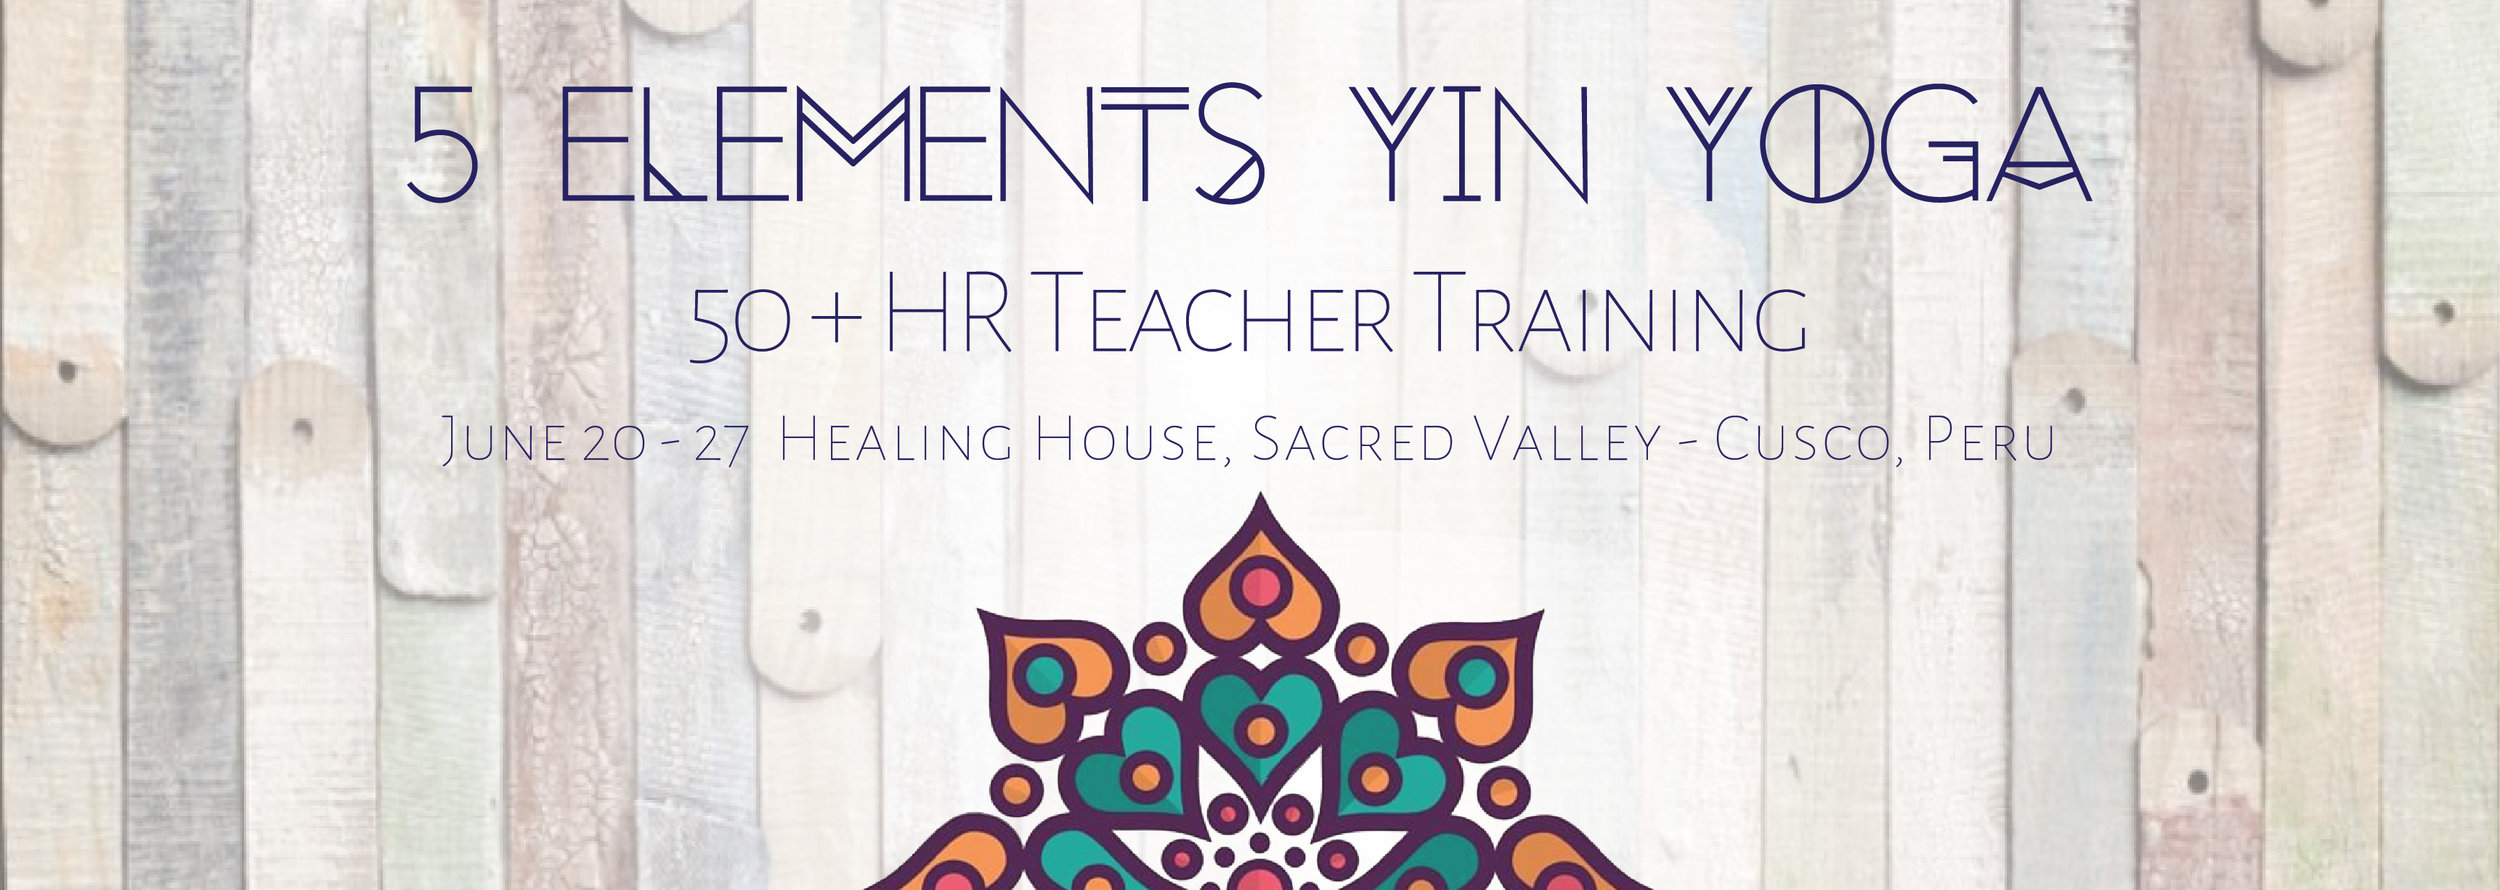 5 elements yin yoga teacher training durga excursions.jpg